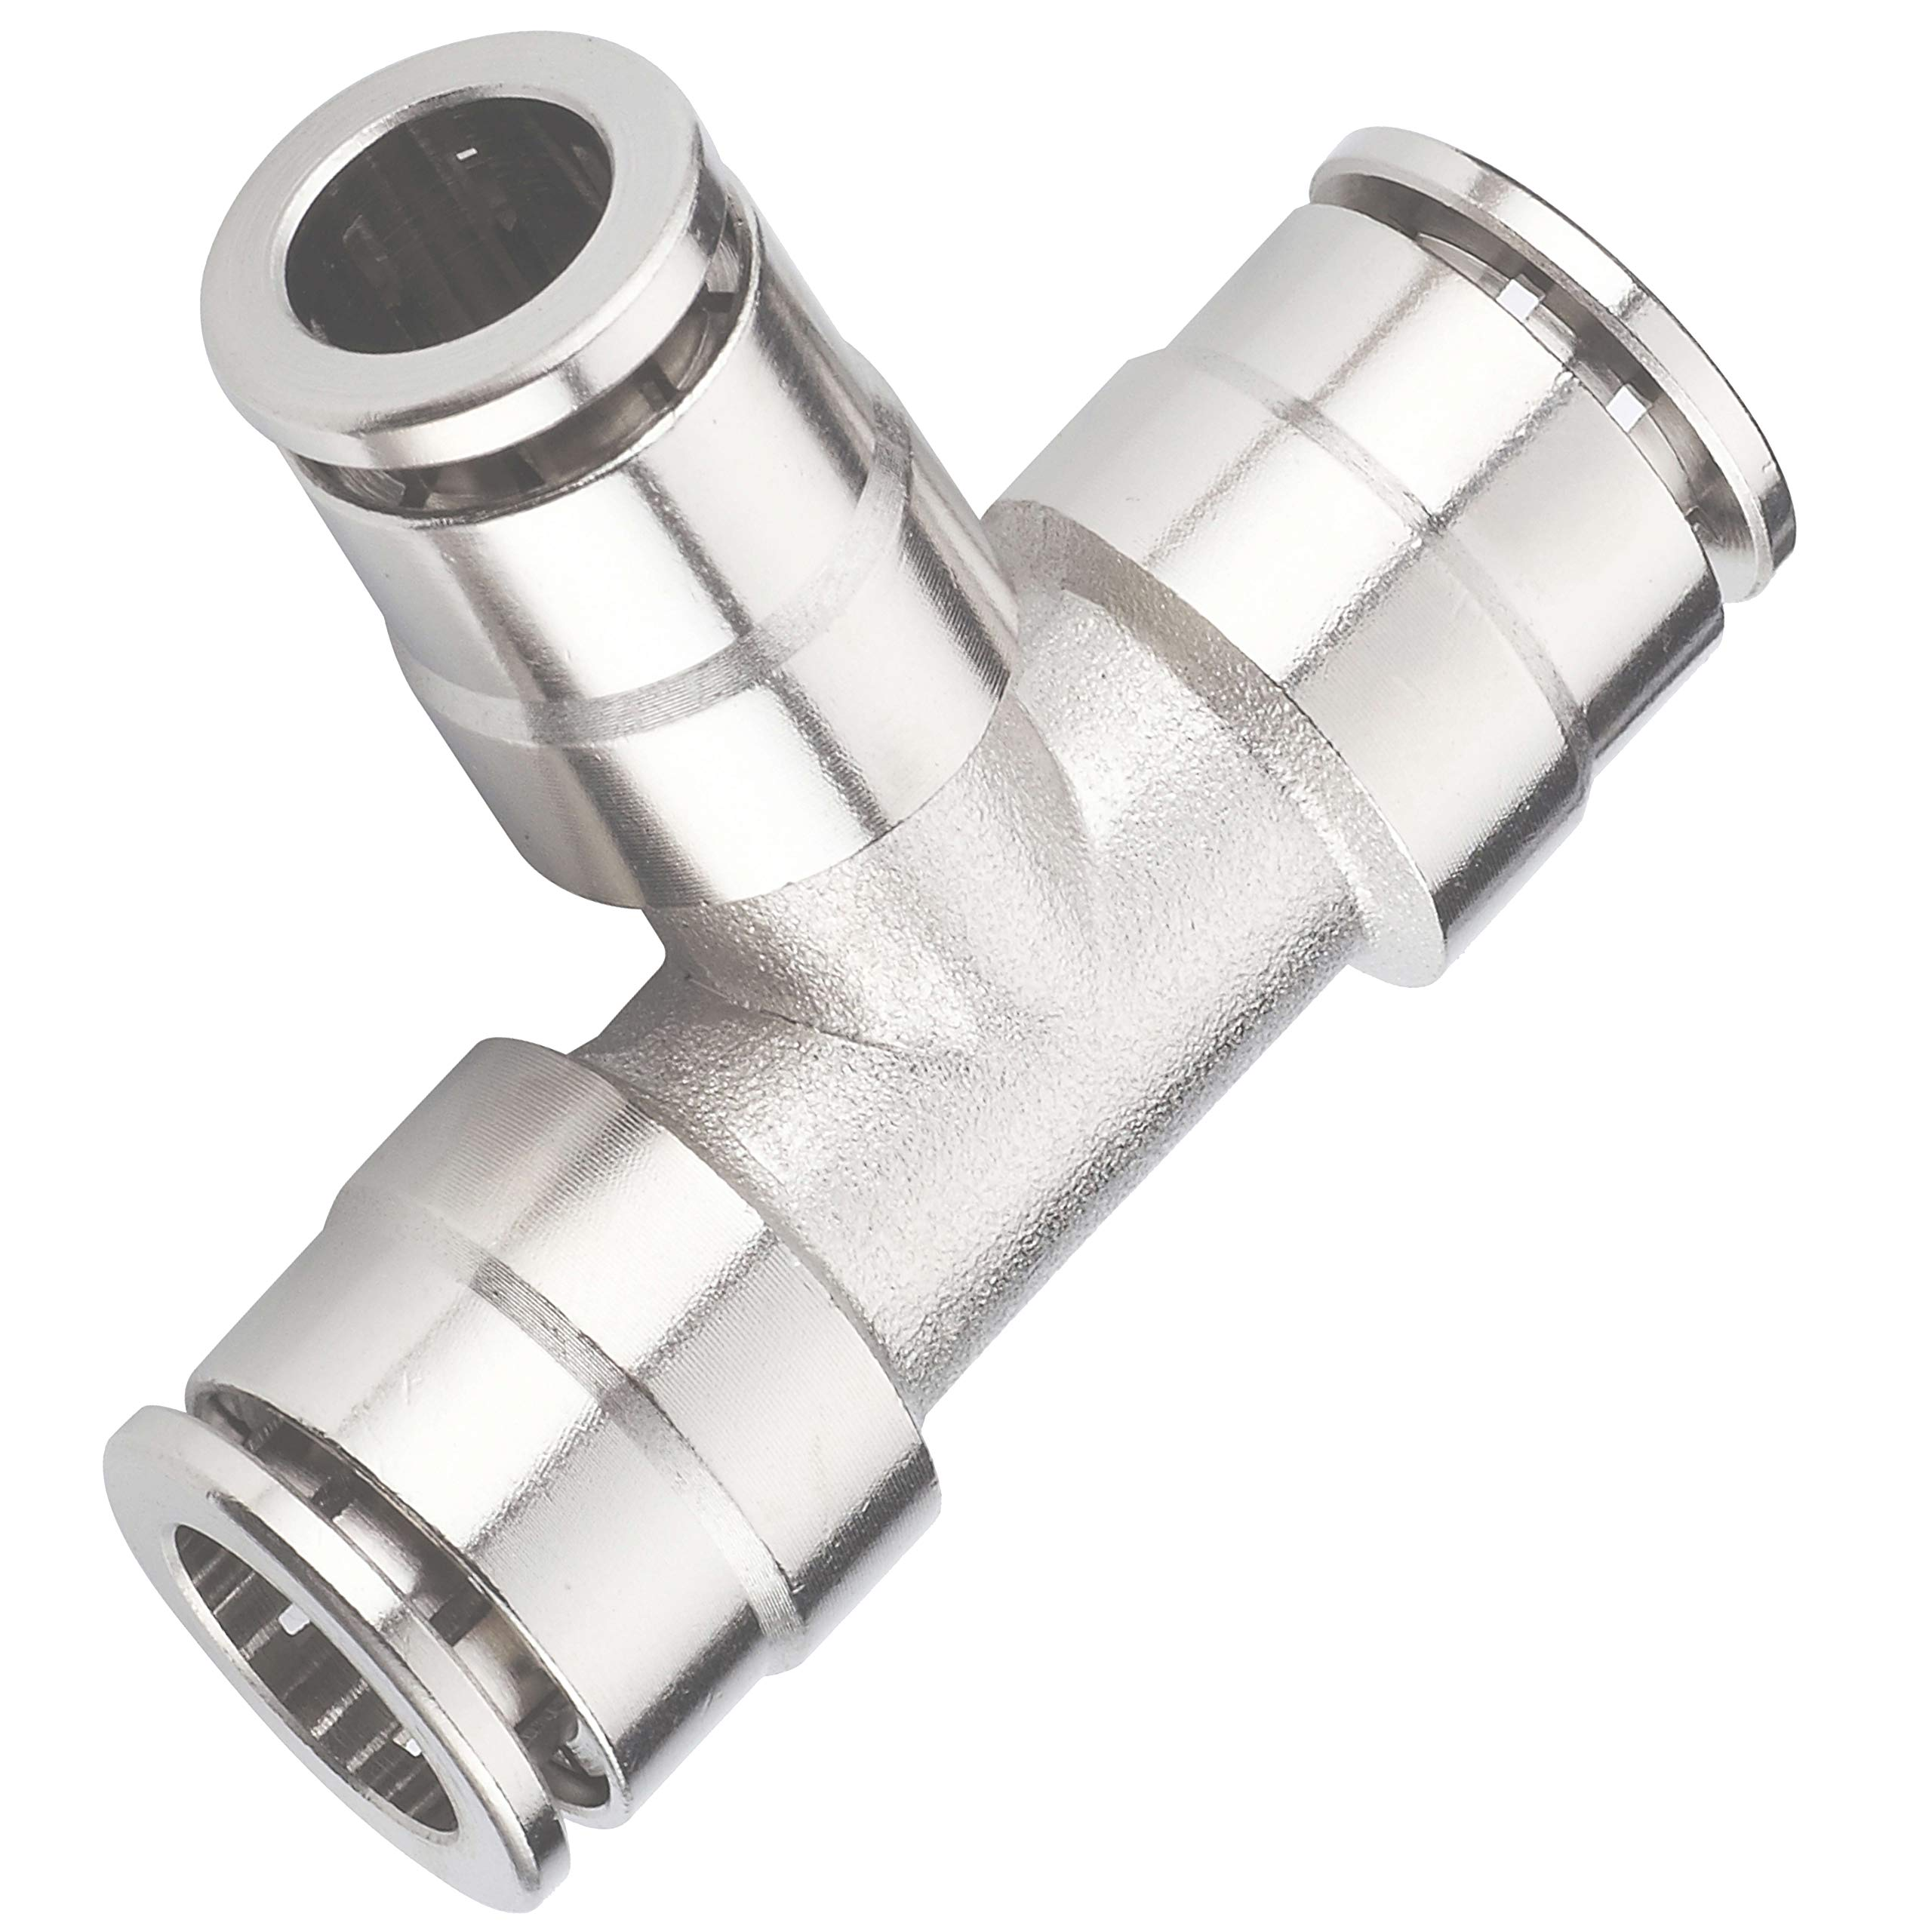 Utah Pneumatic Pack of 5 Nickel-Plated Brass Push to Connect Air Fittings Tee 1/4''Od Straight Union Connect Air Fittings Quick Connect Push Lock Fittings Air Bag Fittings Pneumatic Fittings